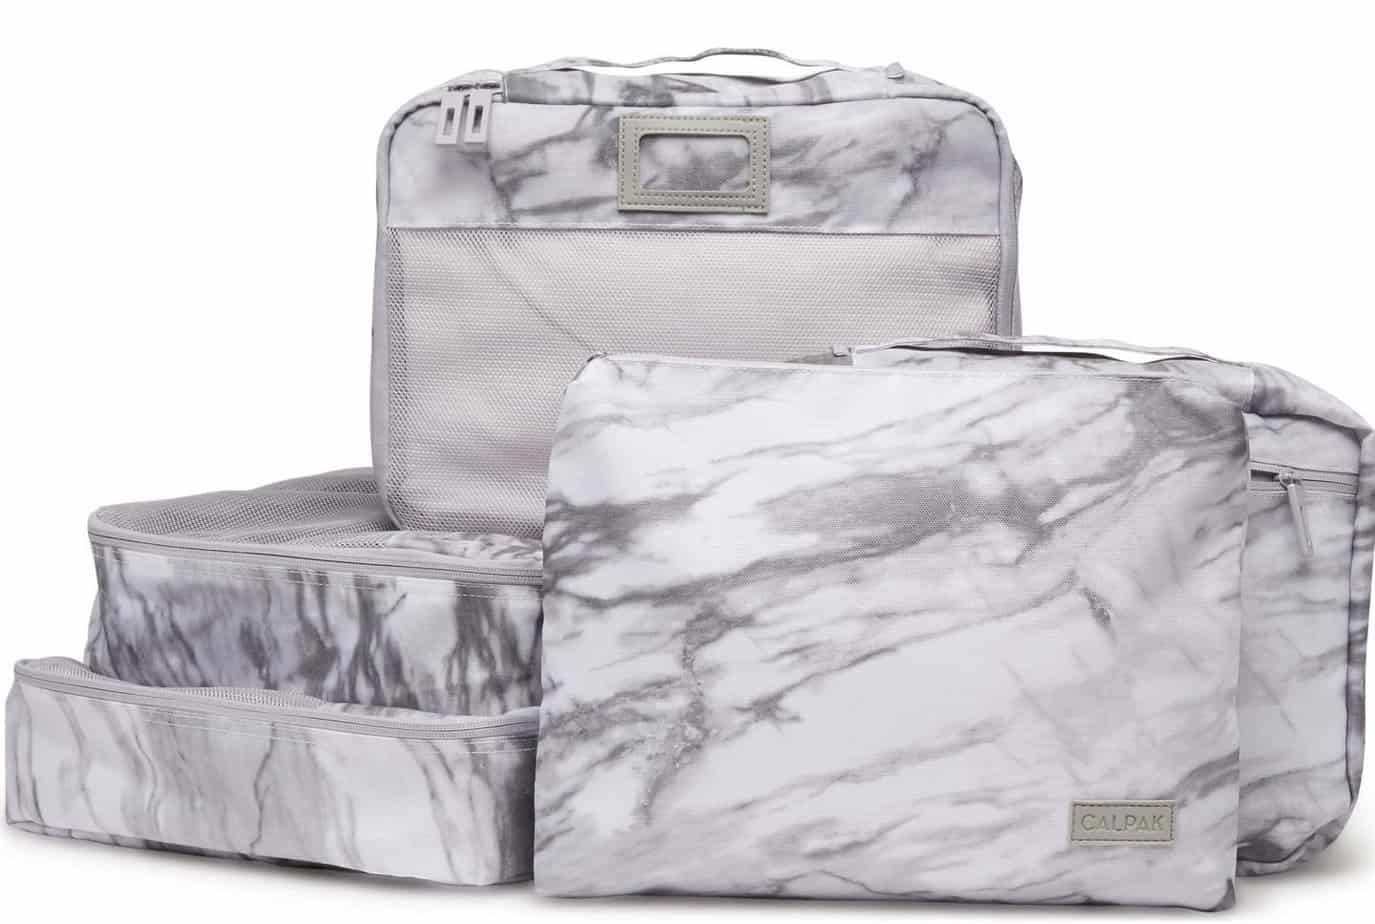 calpack packing cubes